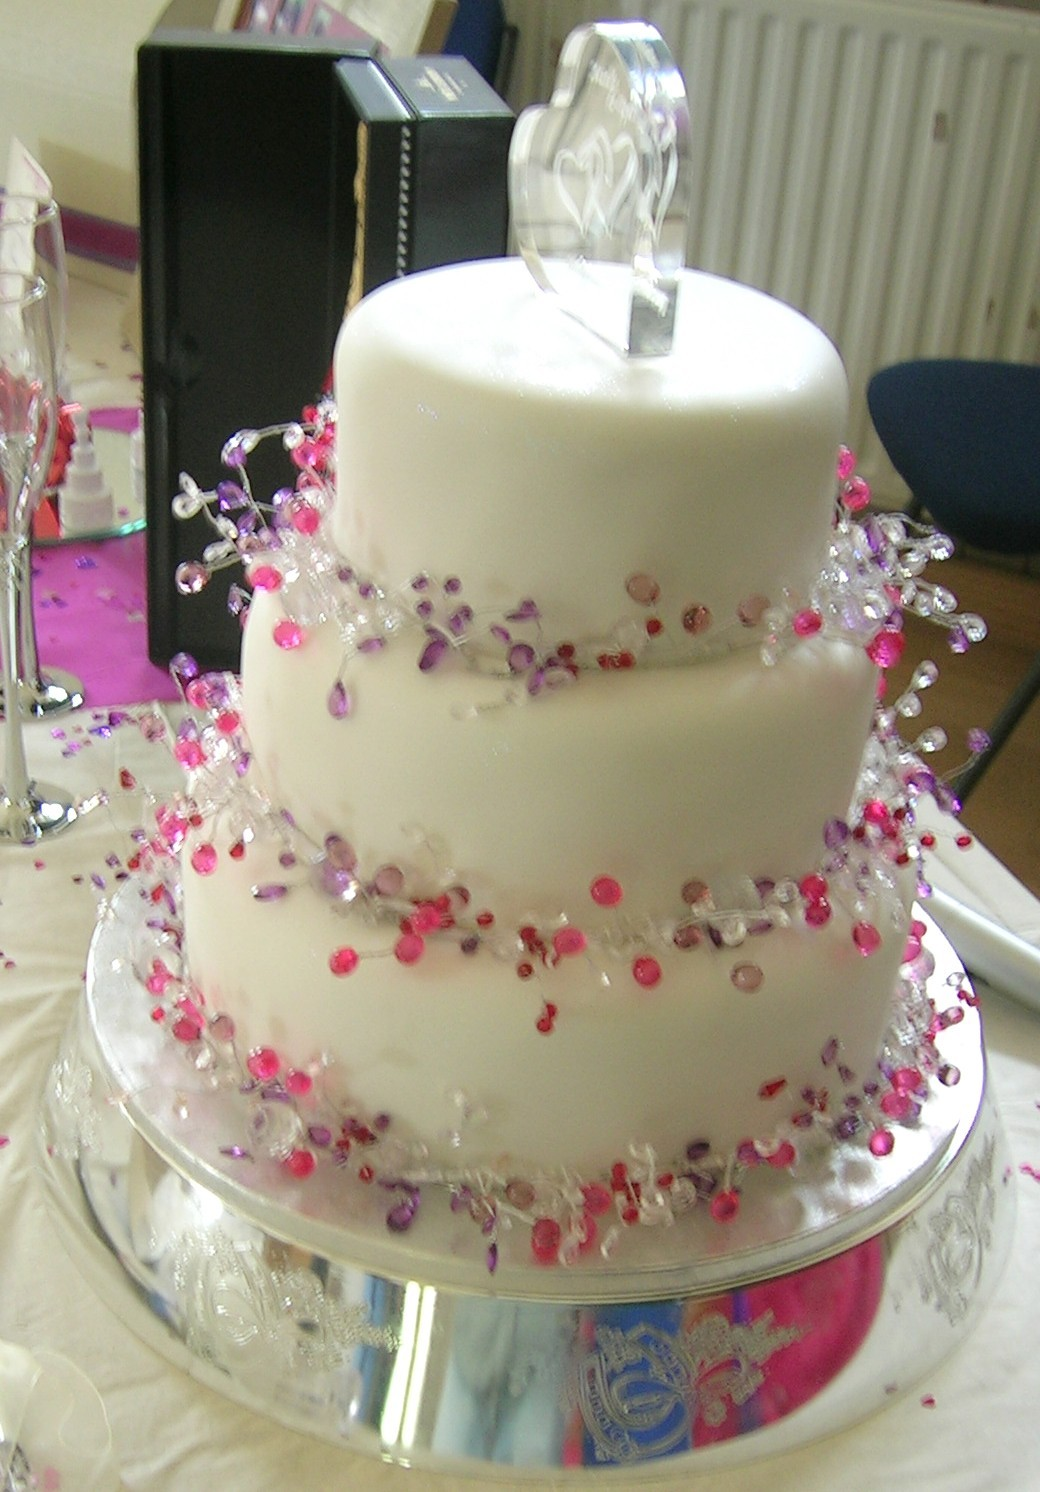 Cake Decorating Wedding Cakes : Wedding Cake Decorating Pictures Ideas